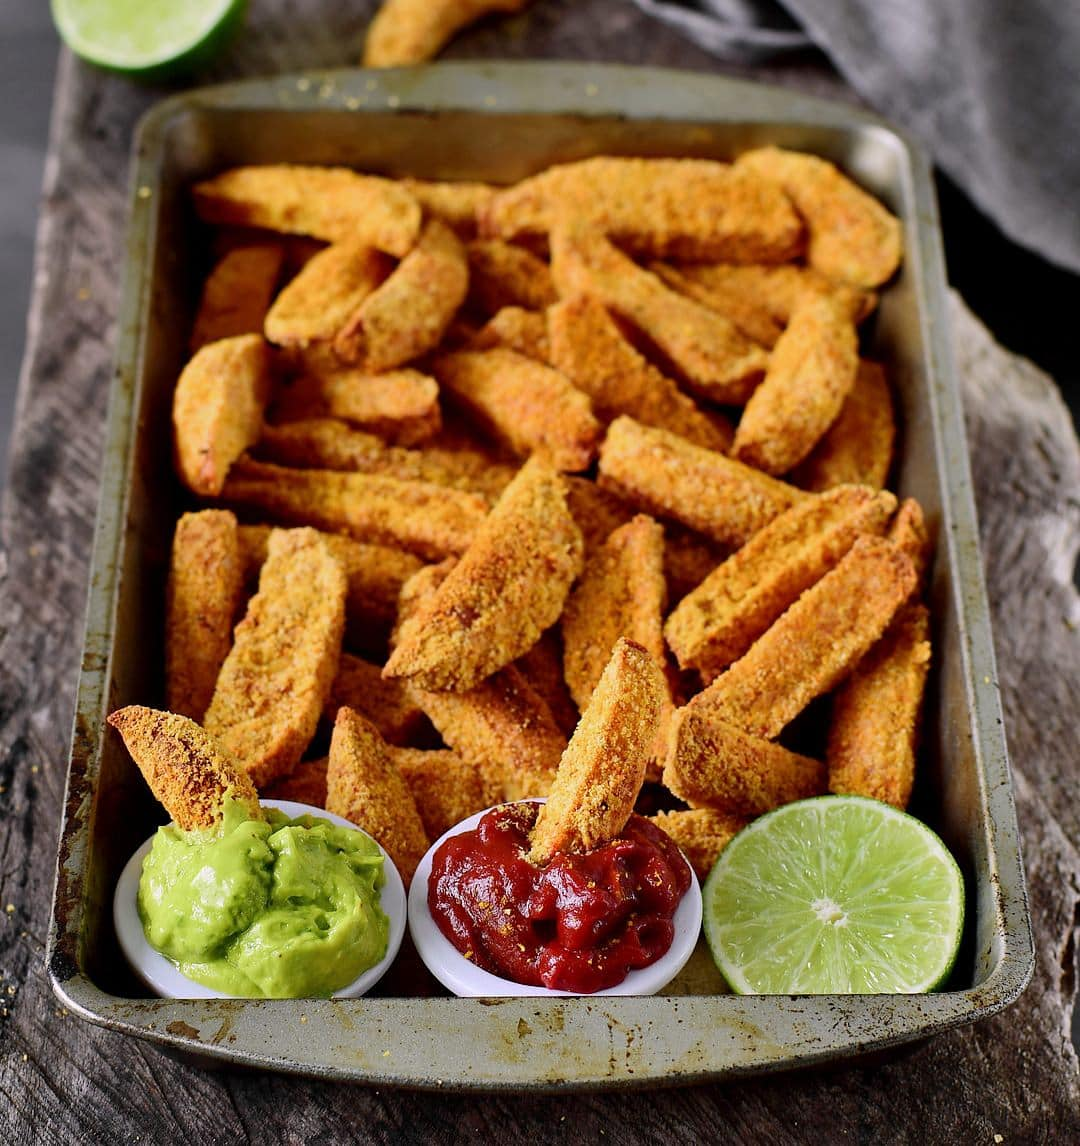 Crispy oven-baked vegan parmesan potato wedges with guacamole dip and ketchup